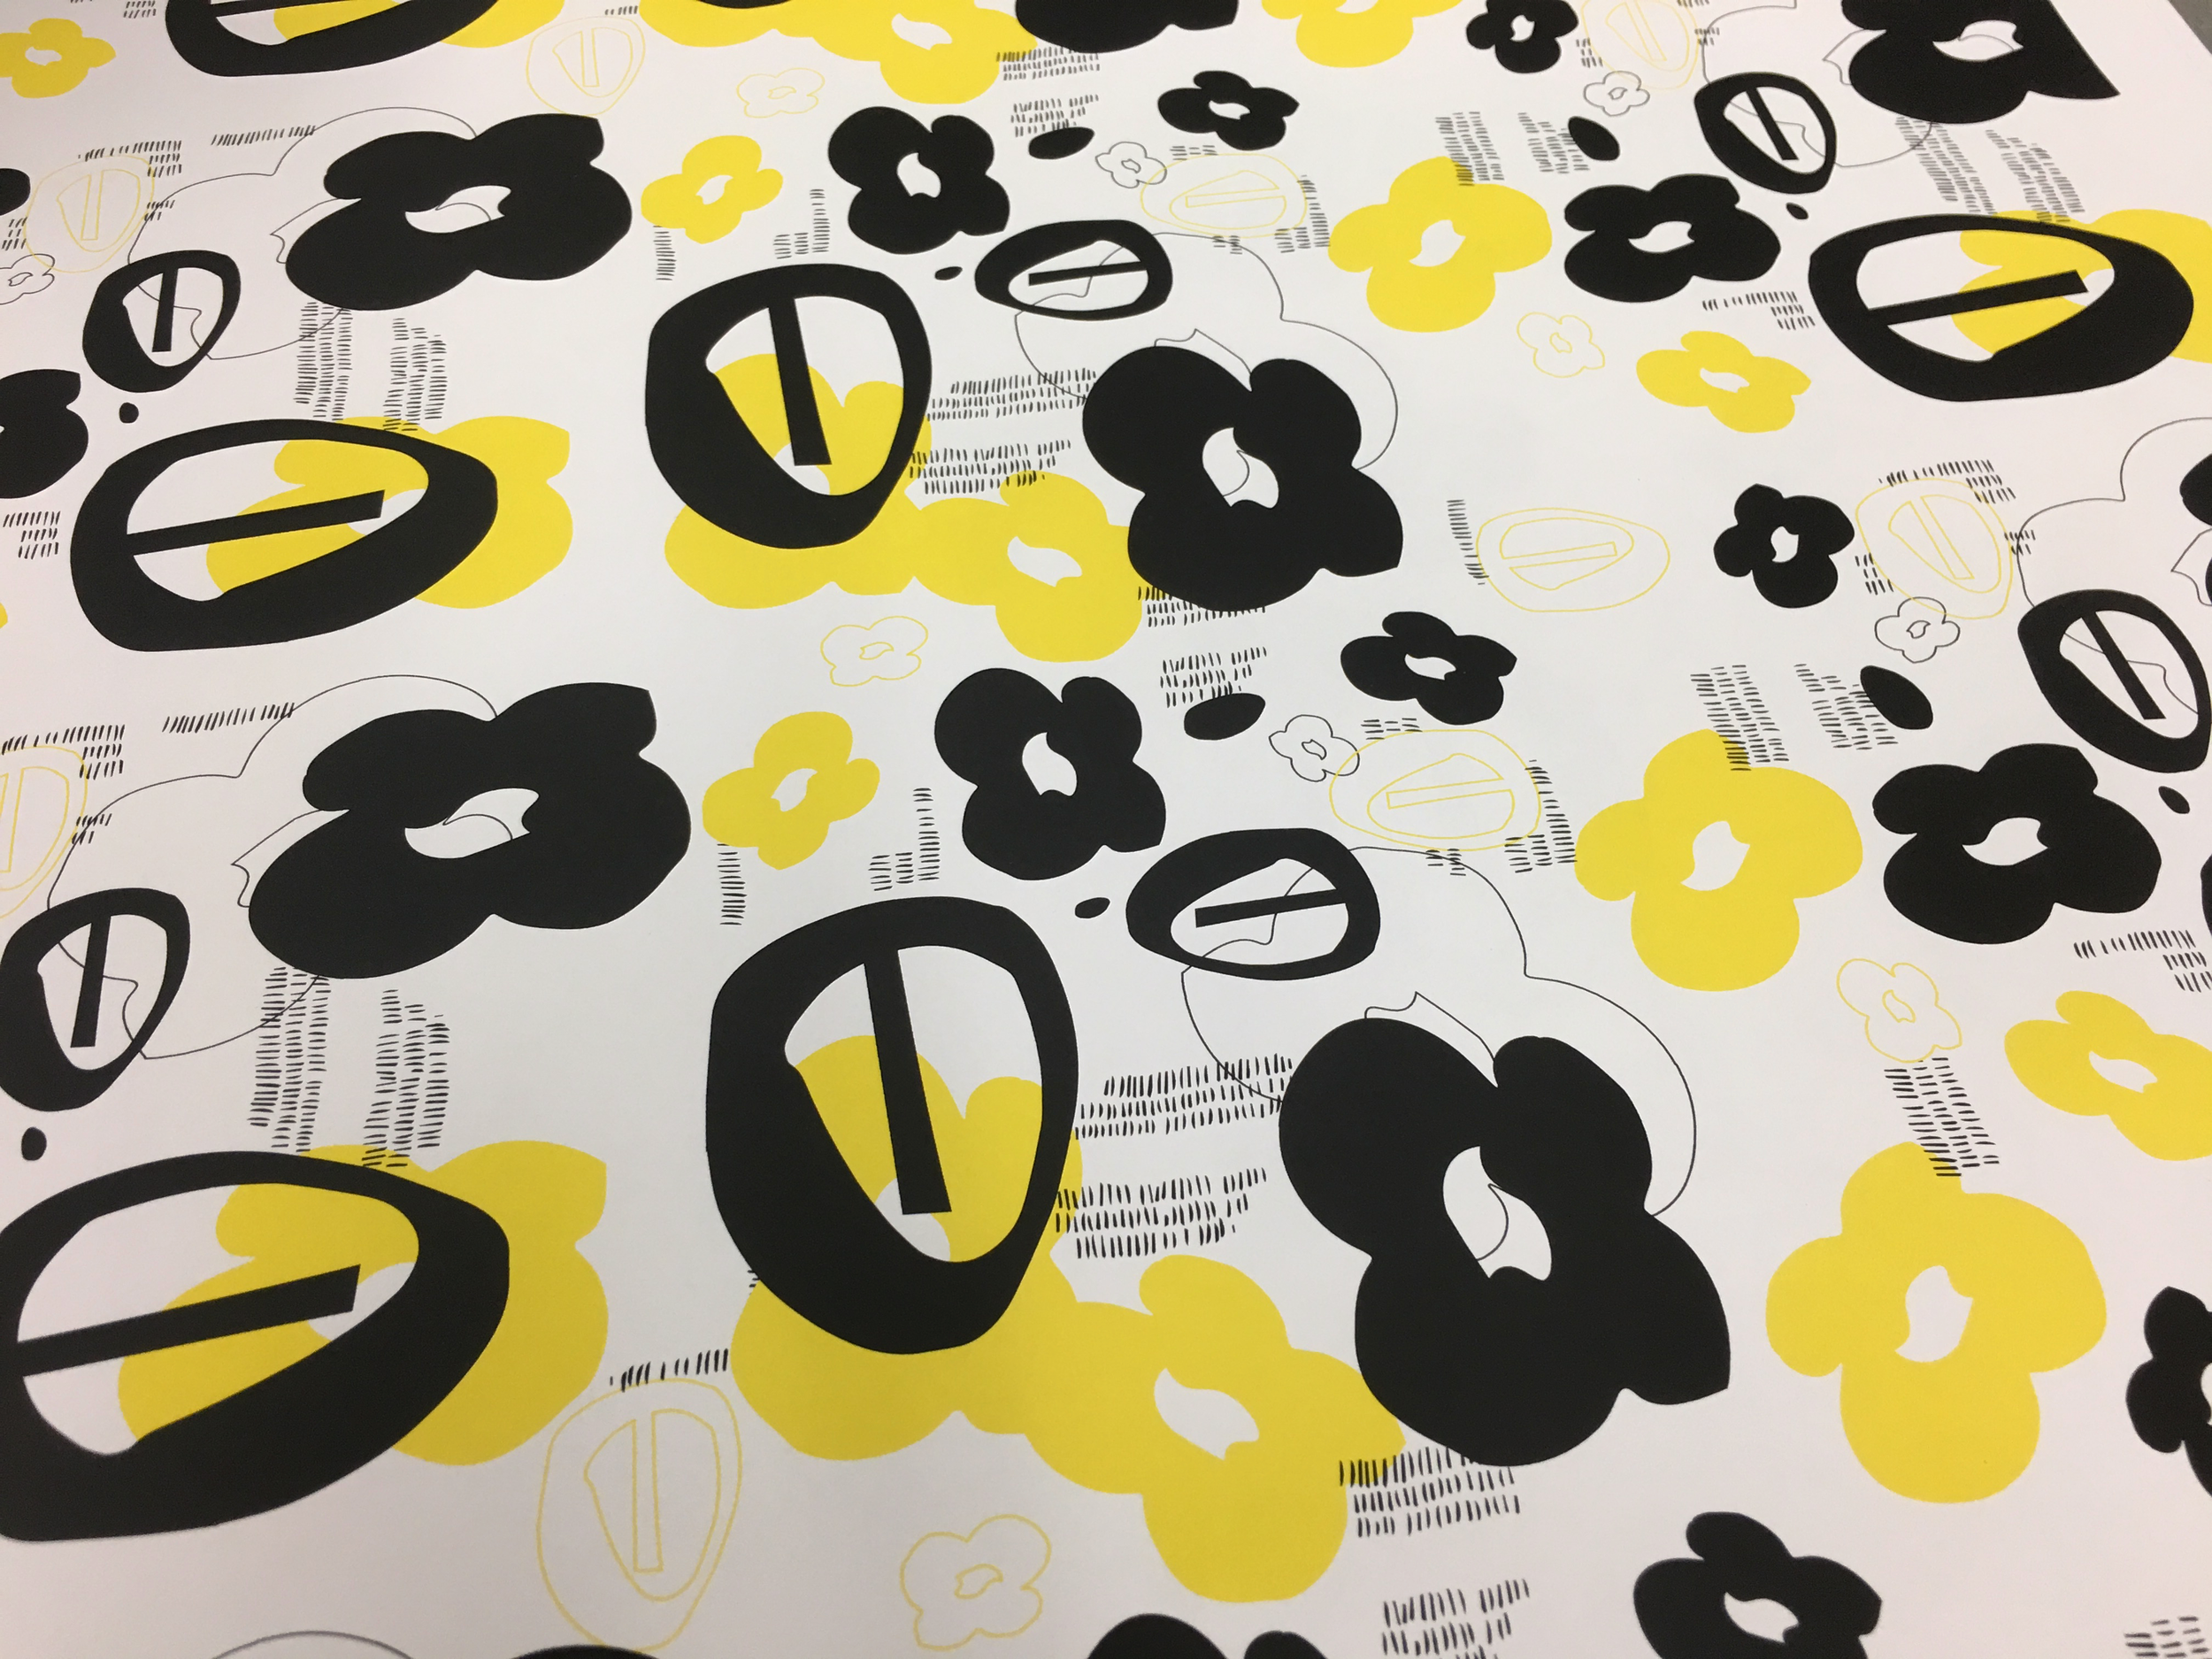 ScreenPrint on Paper, Layering Repeats, Shapes Developed From Cut Paper